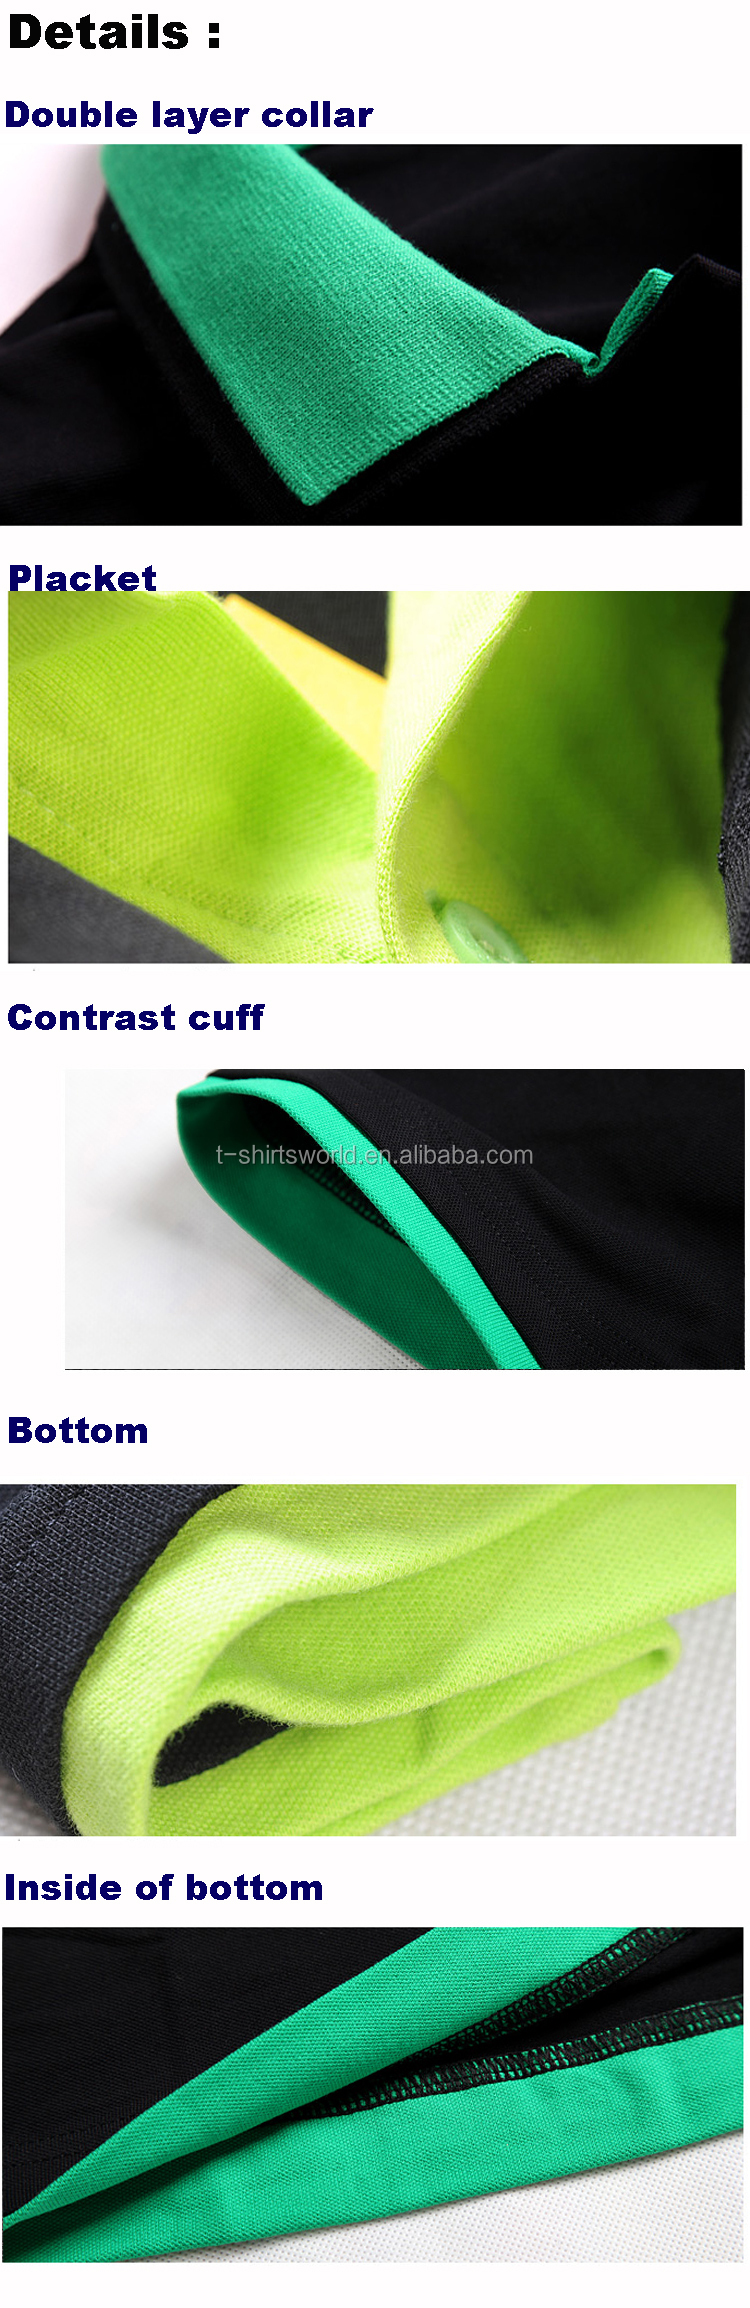 cba8403e1d7 Custom Made New Design of Men s Two Layer Collar Polyester Bowling Polo  Shirt With Full Sleeve